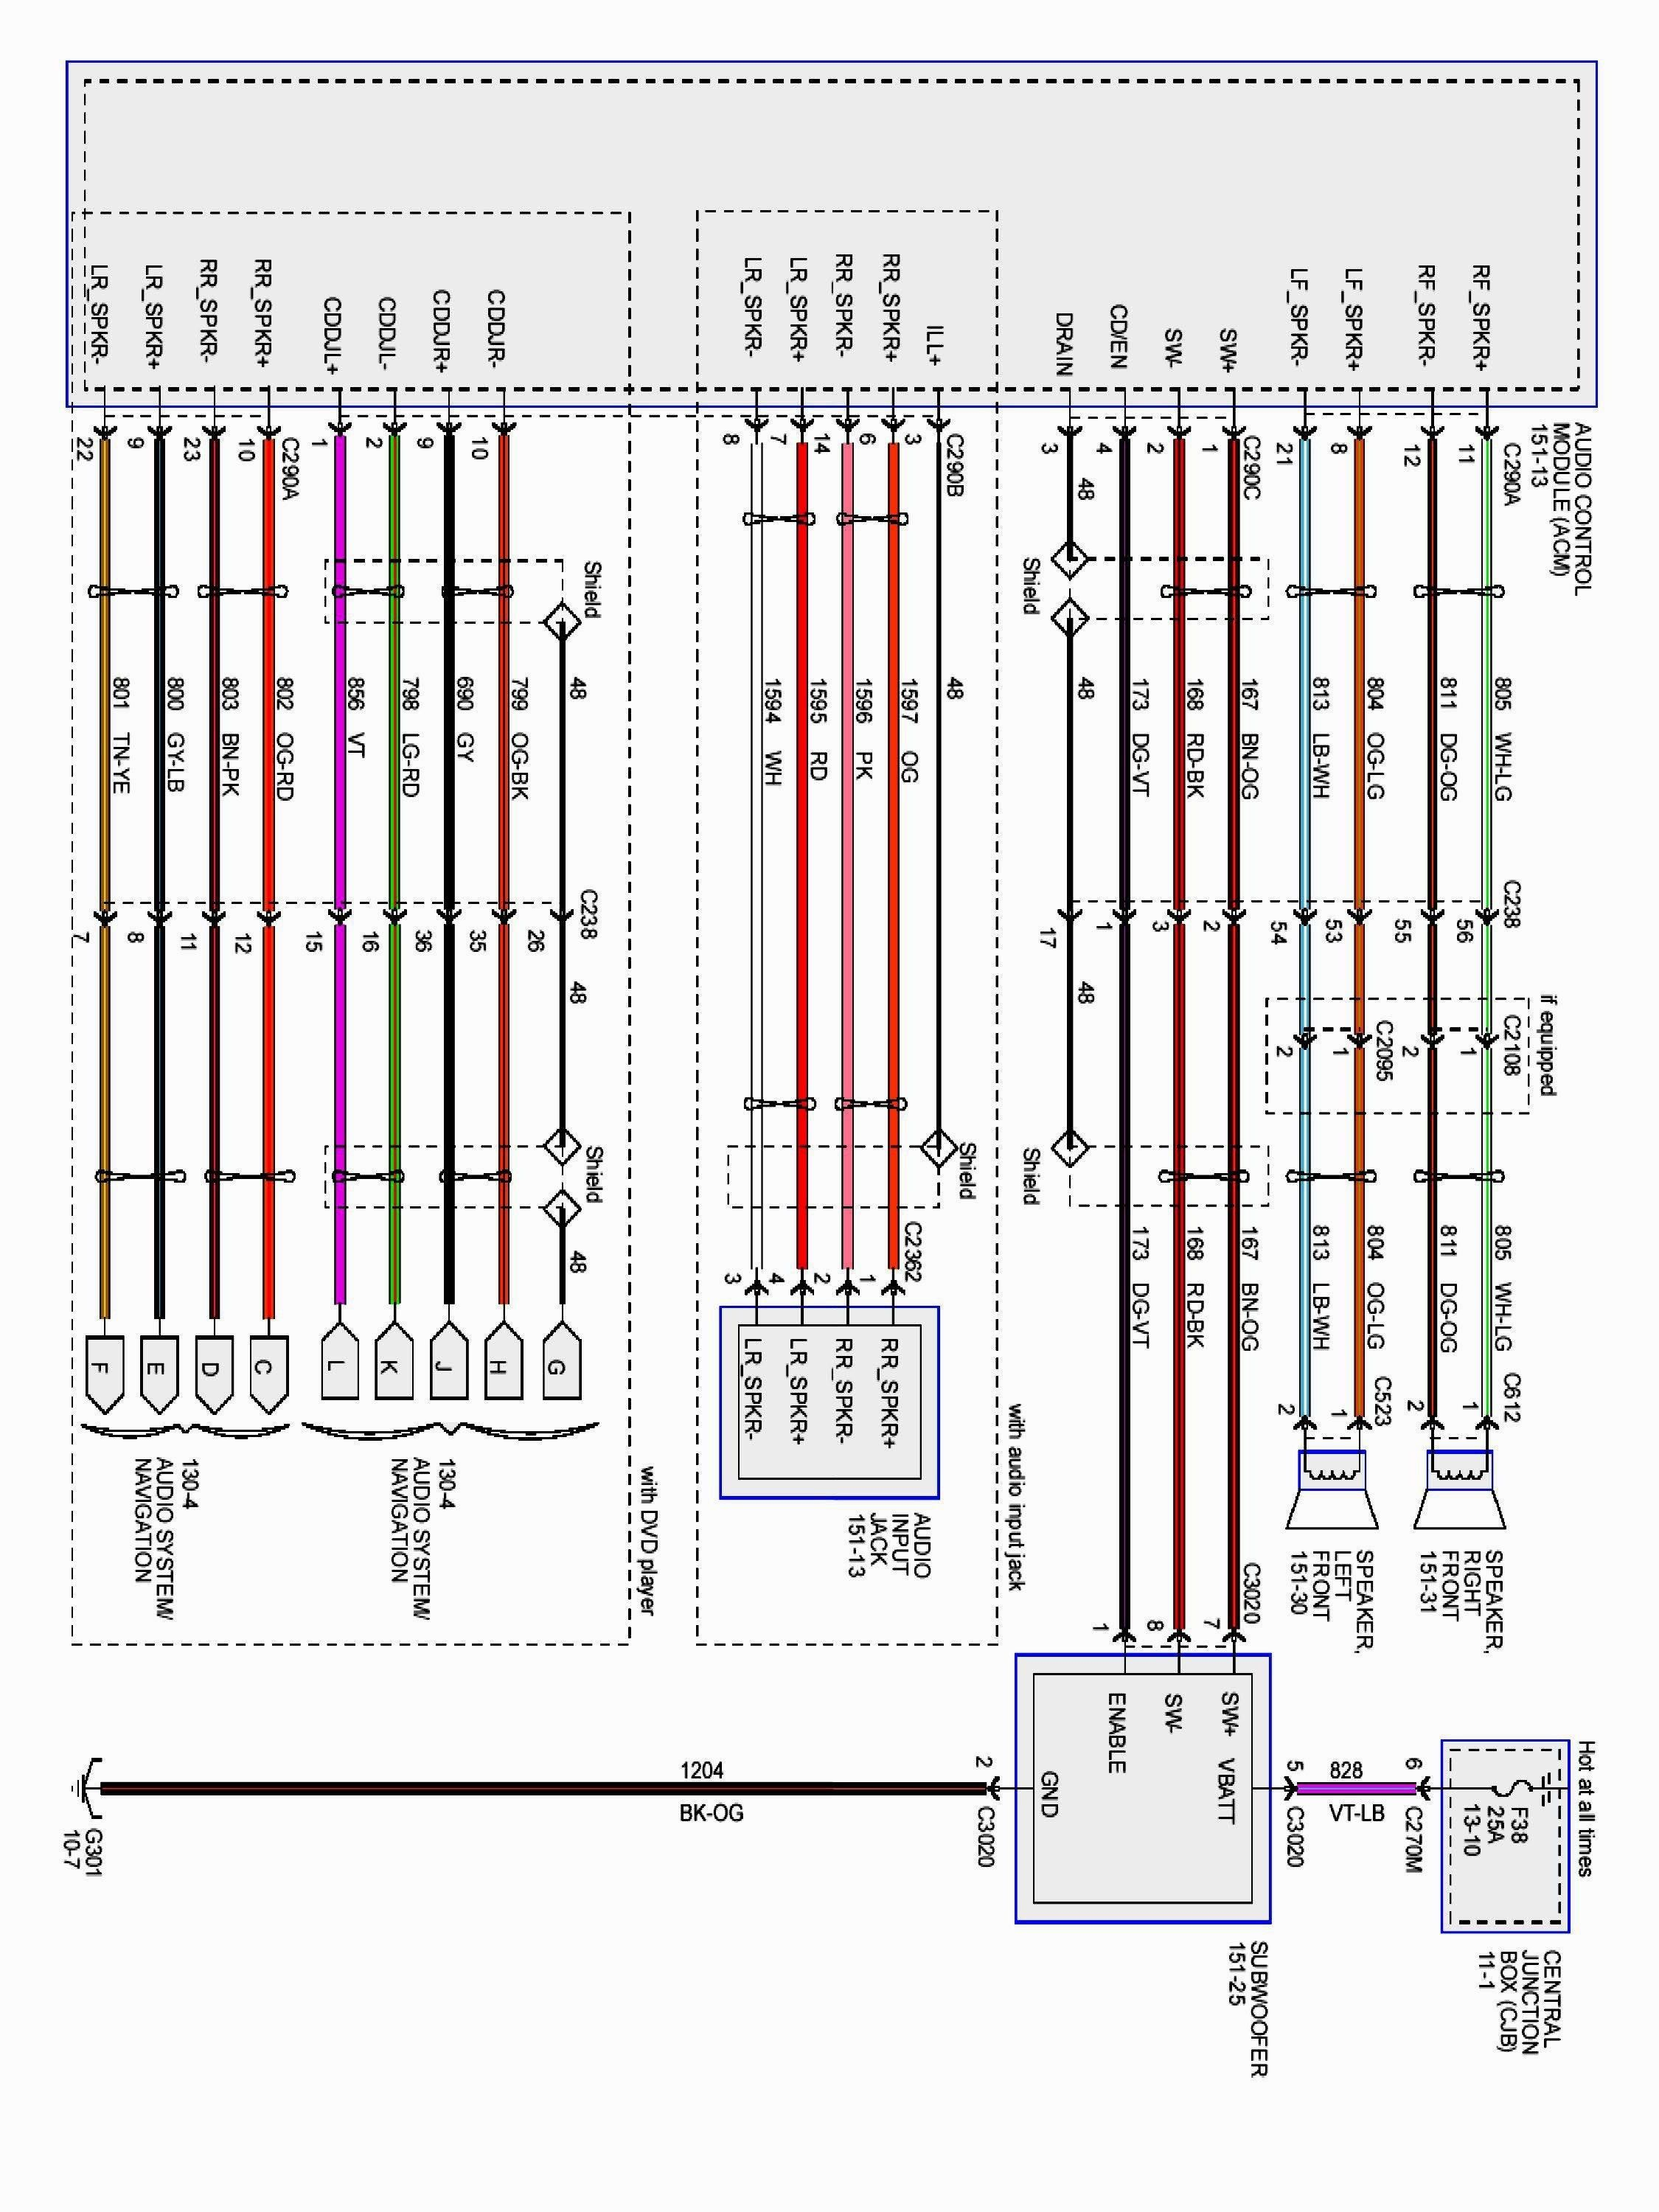 Ford Radio Wiring Diagram Download : radio, wiring, diagram, download, Amplifier, Wiring, Diagram, Bookingritzcarlton.info, Expedition,, F150,, Ranger